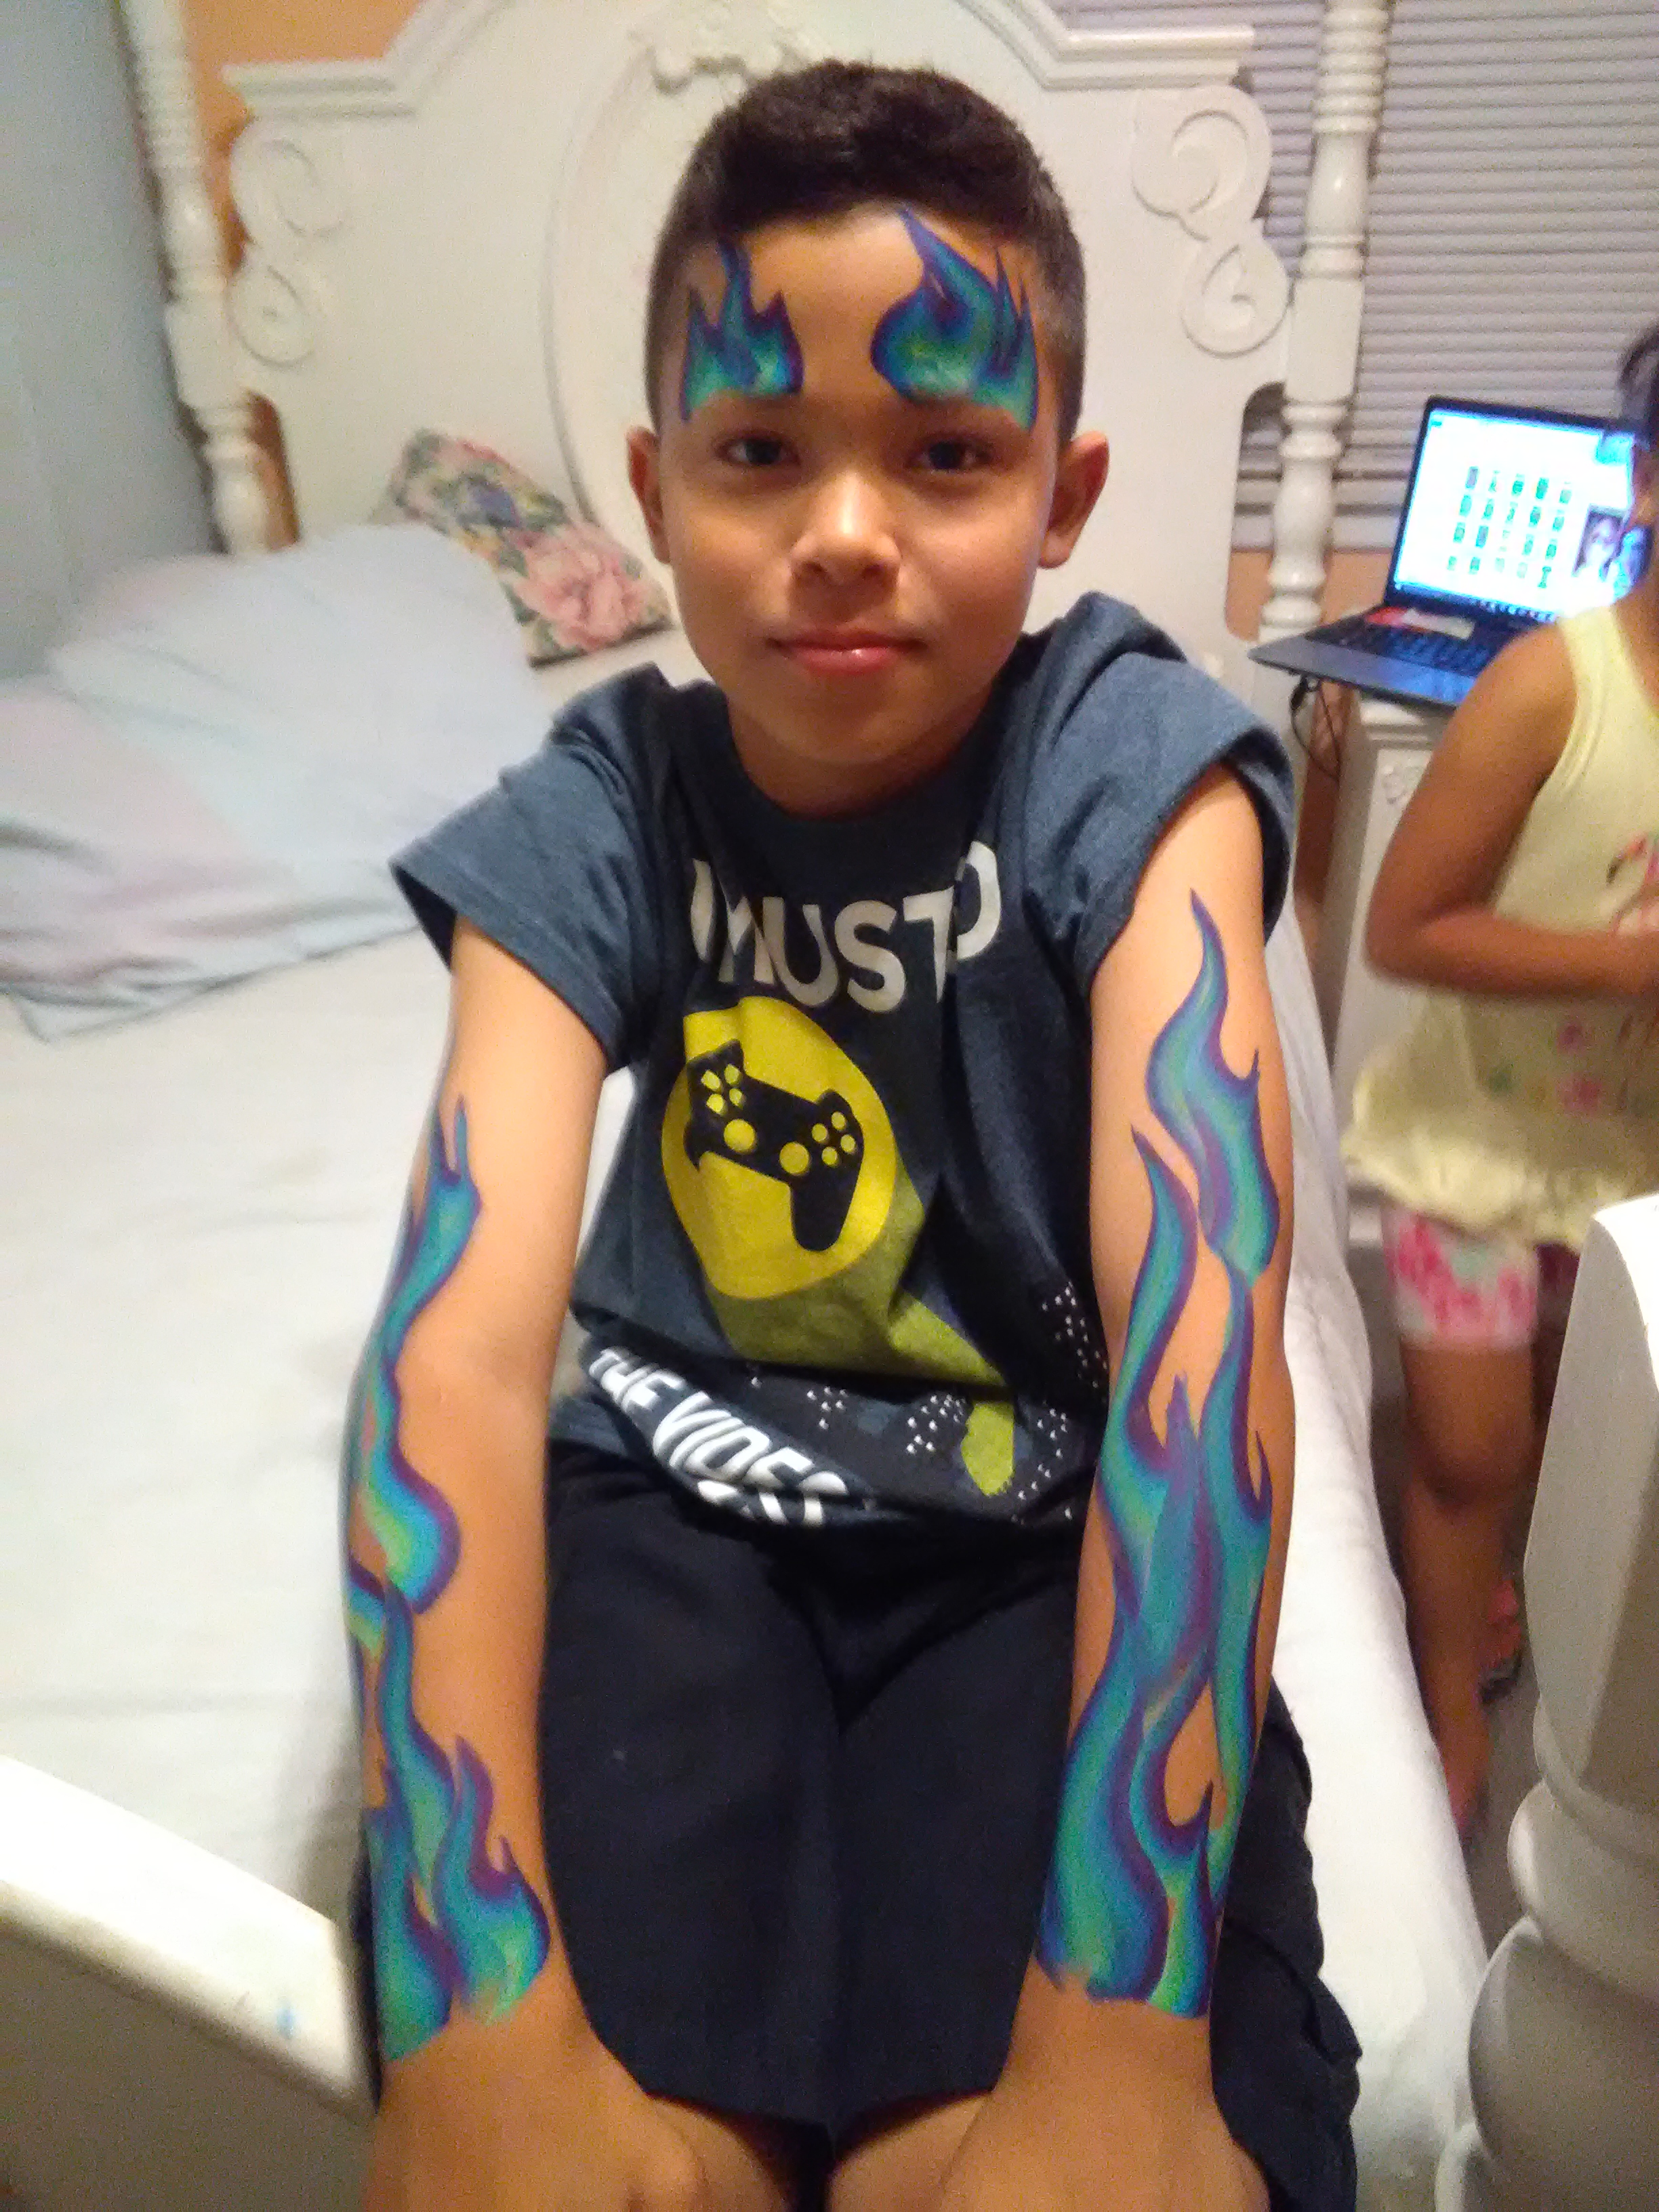 Blue Flame face paint